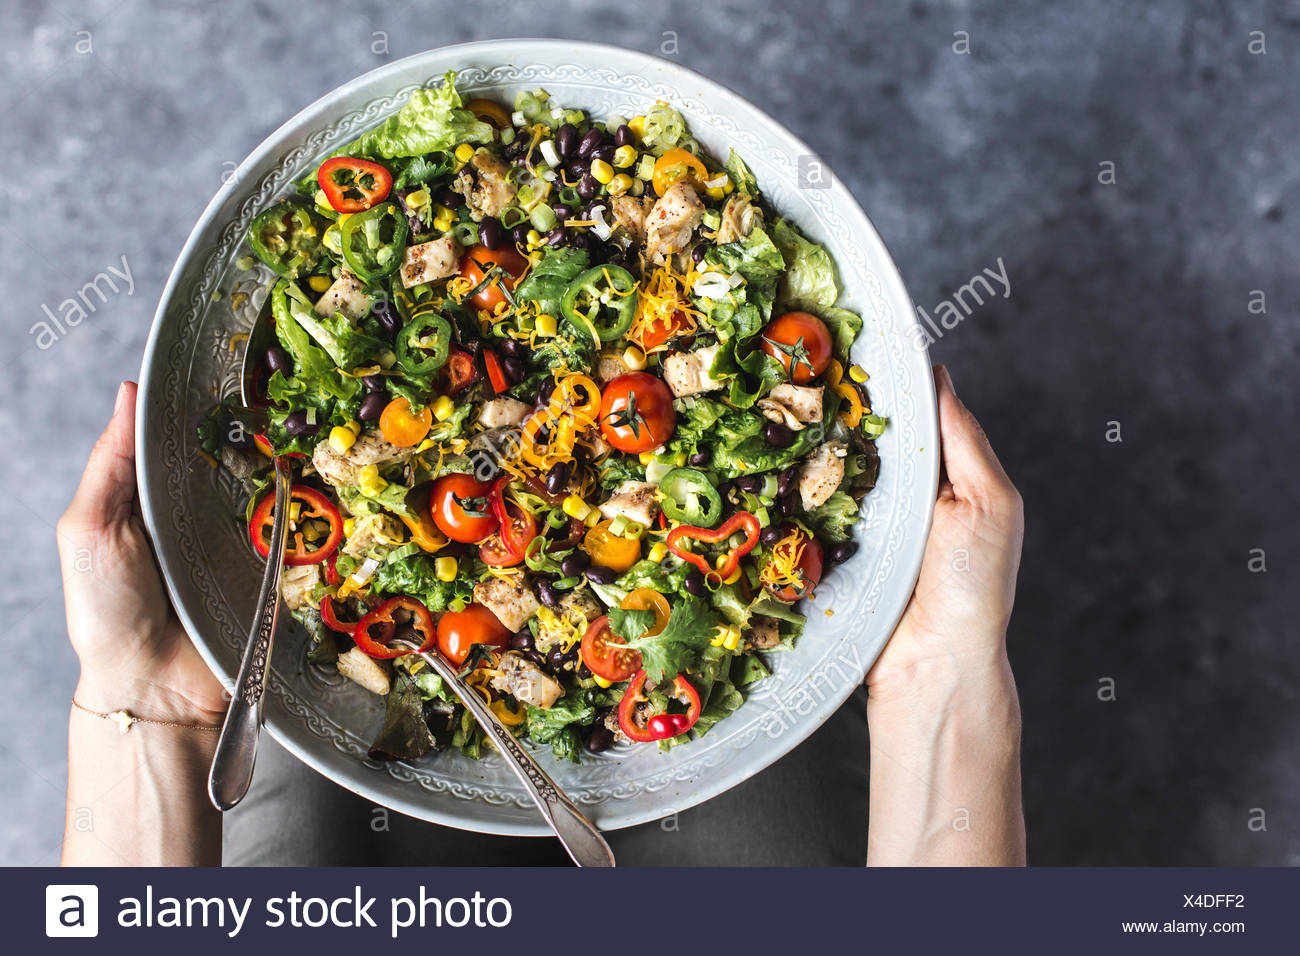 A large bowl of Southwestern Chicken Salad with Creamy Avocado Dressing in a woman's hands is photographed from the top view. - Stock Image